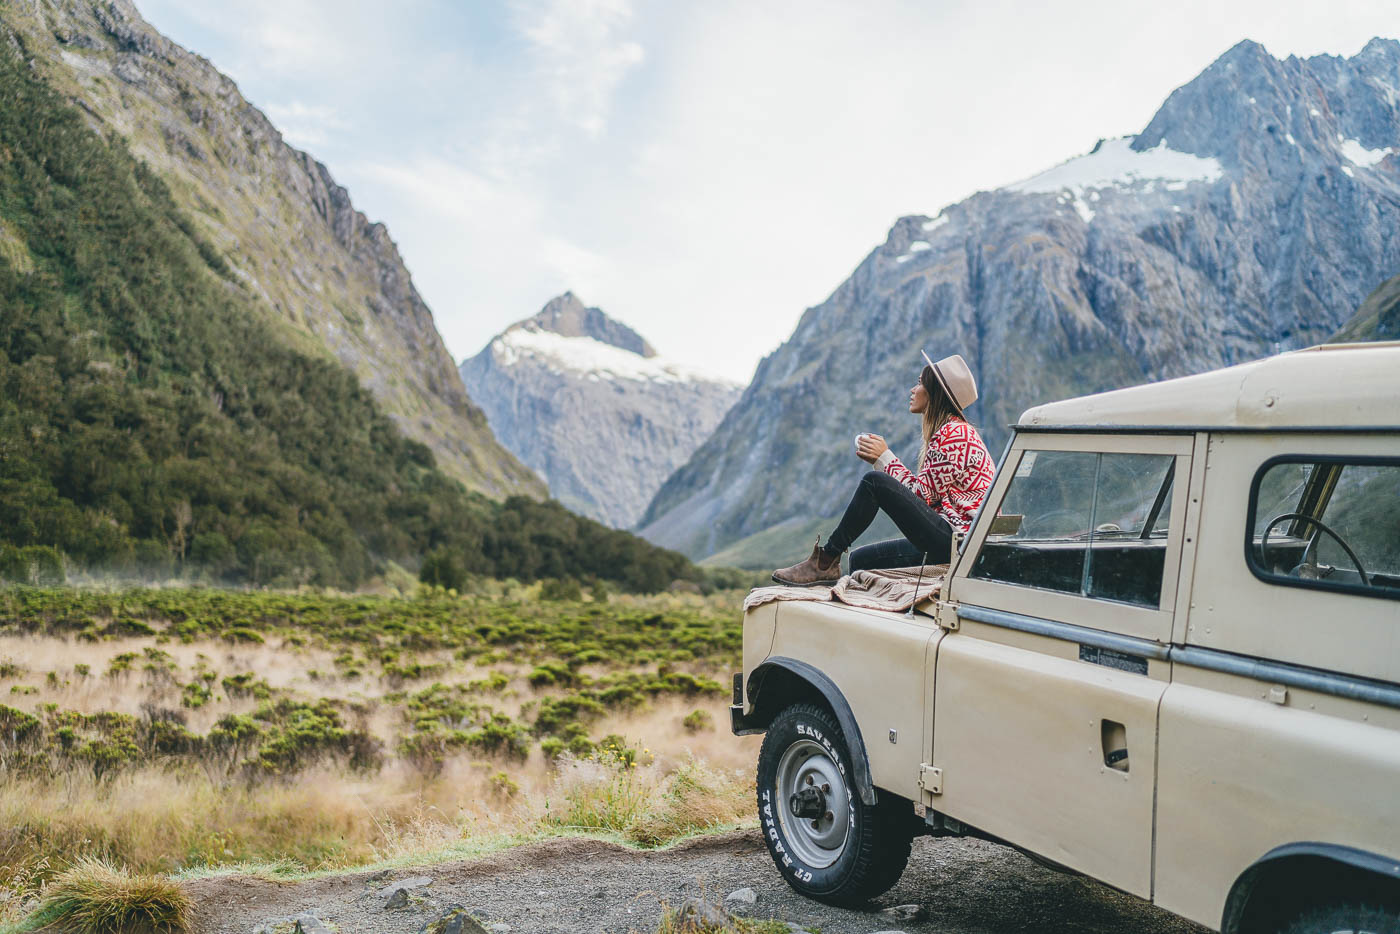 Enjoying a hot drink on a vintage Land rover in Fiordland, New Zealand